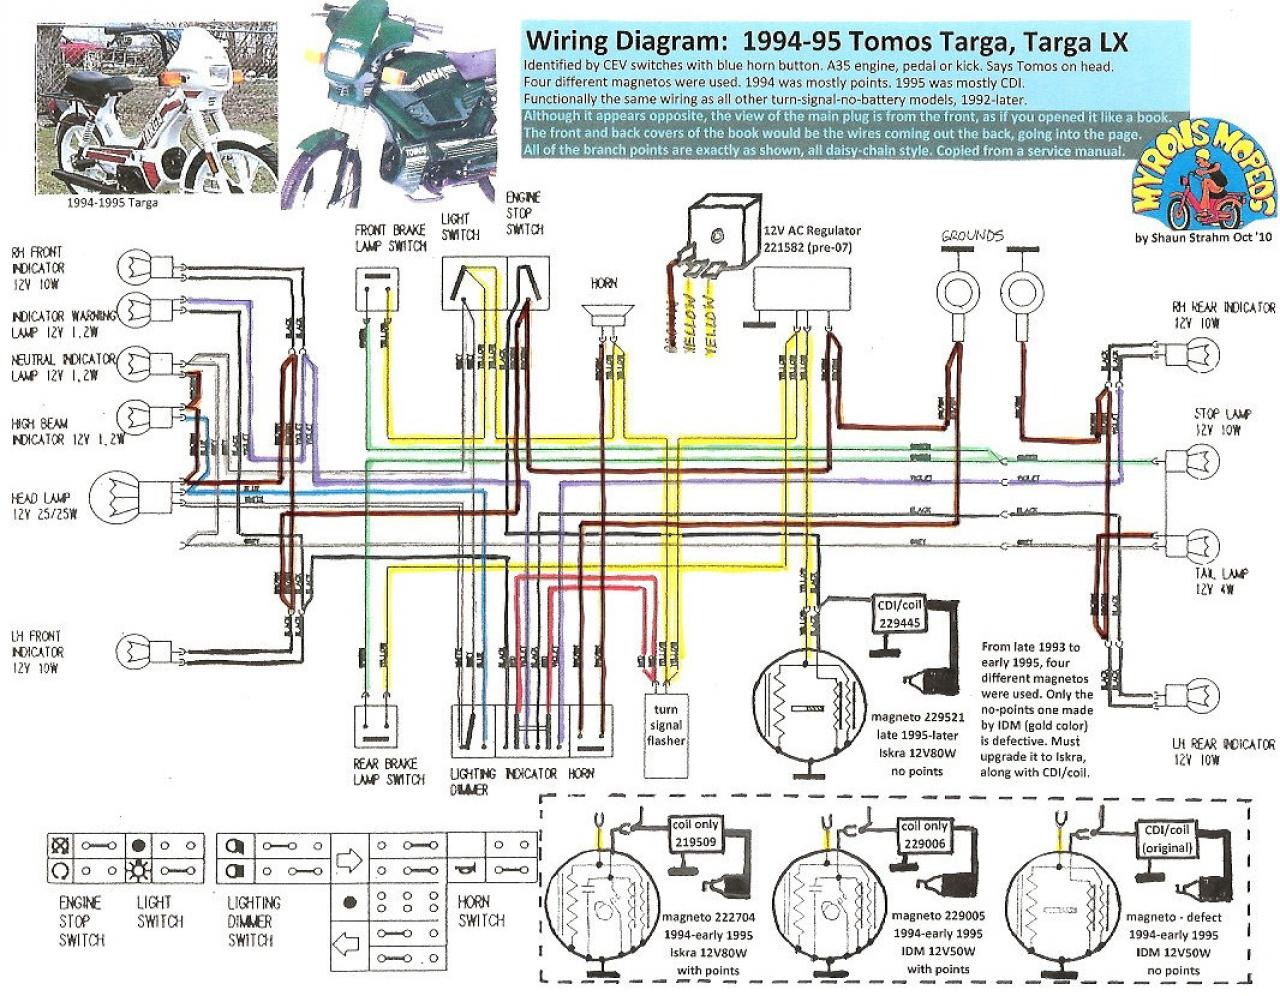 tomos youngstr 50 2008 9?resize=665%2C517 derbi senda 50 wiring diagram derbi free wiring diagrams  at alyssarenee.co